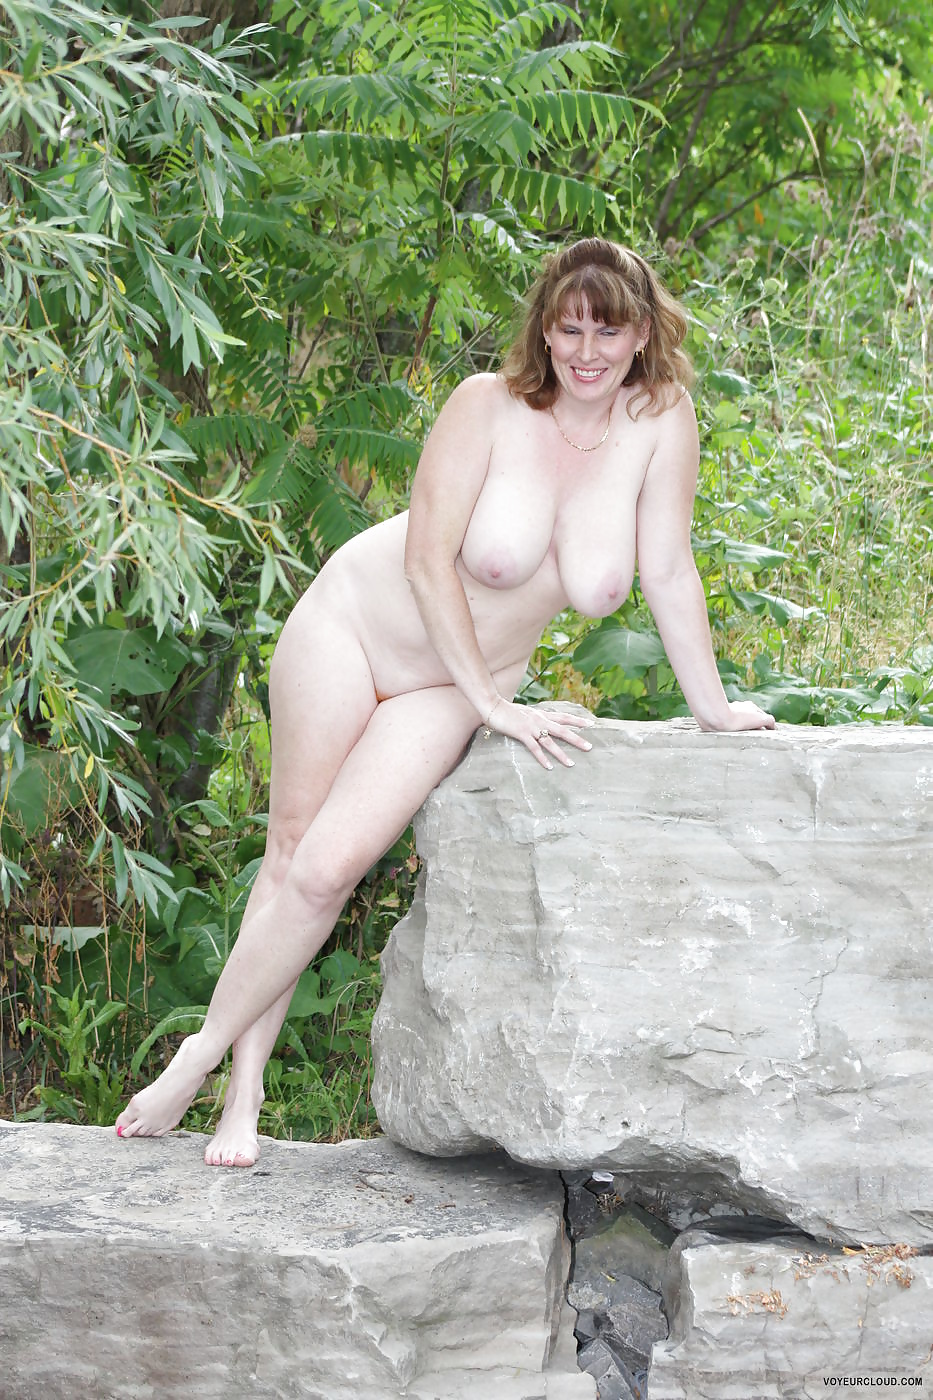 Lisa jane sex, jewish naked girl pic